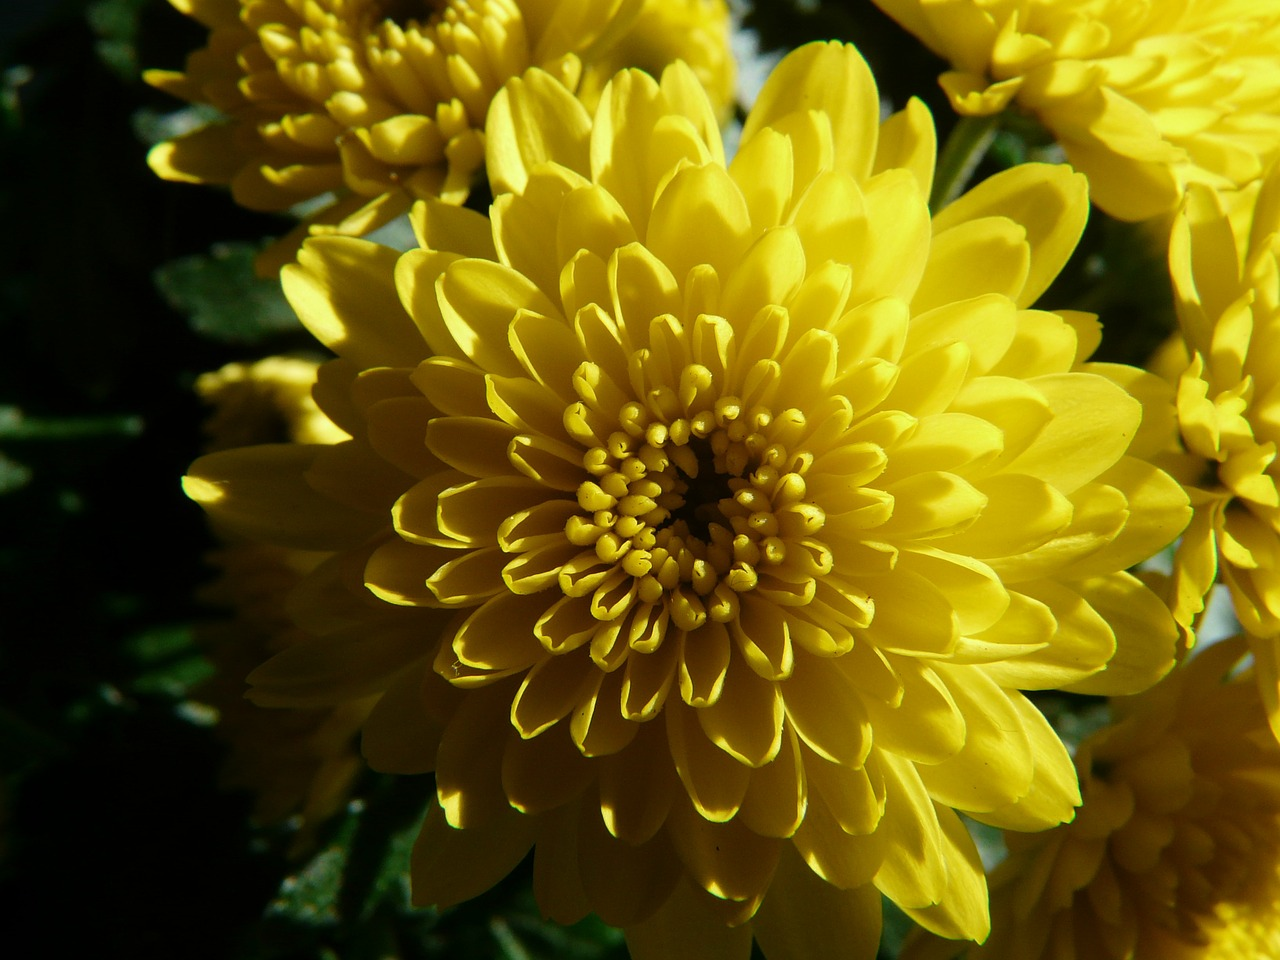 garden chrysanthemum chrysanthemum grandifloraum dendranthema grandiflorum free photo